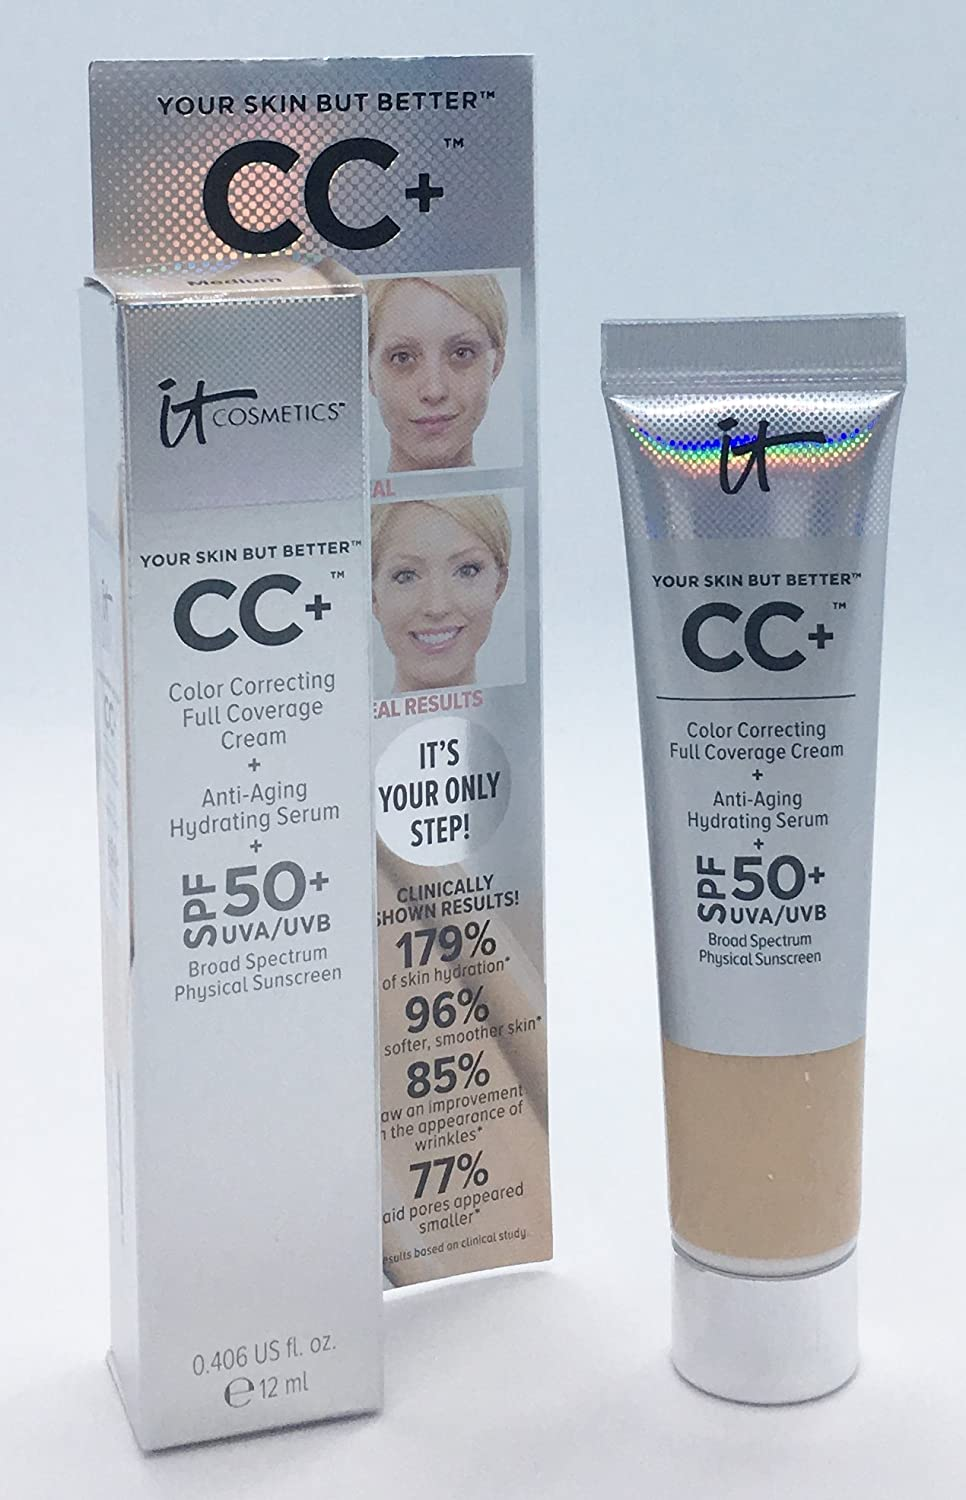 IT Cosmetics Your Skin But Better CC+ Cream SPF 50+, 12 ml, Travel Size - Medium